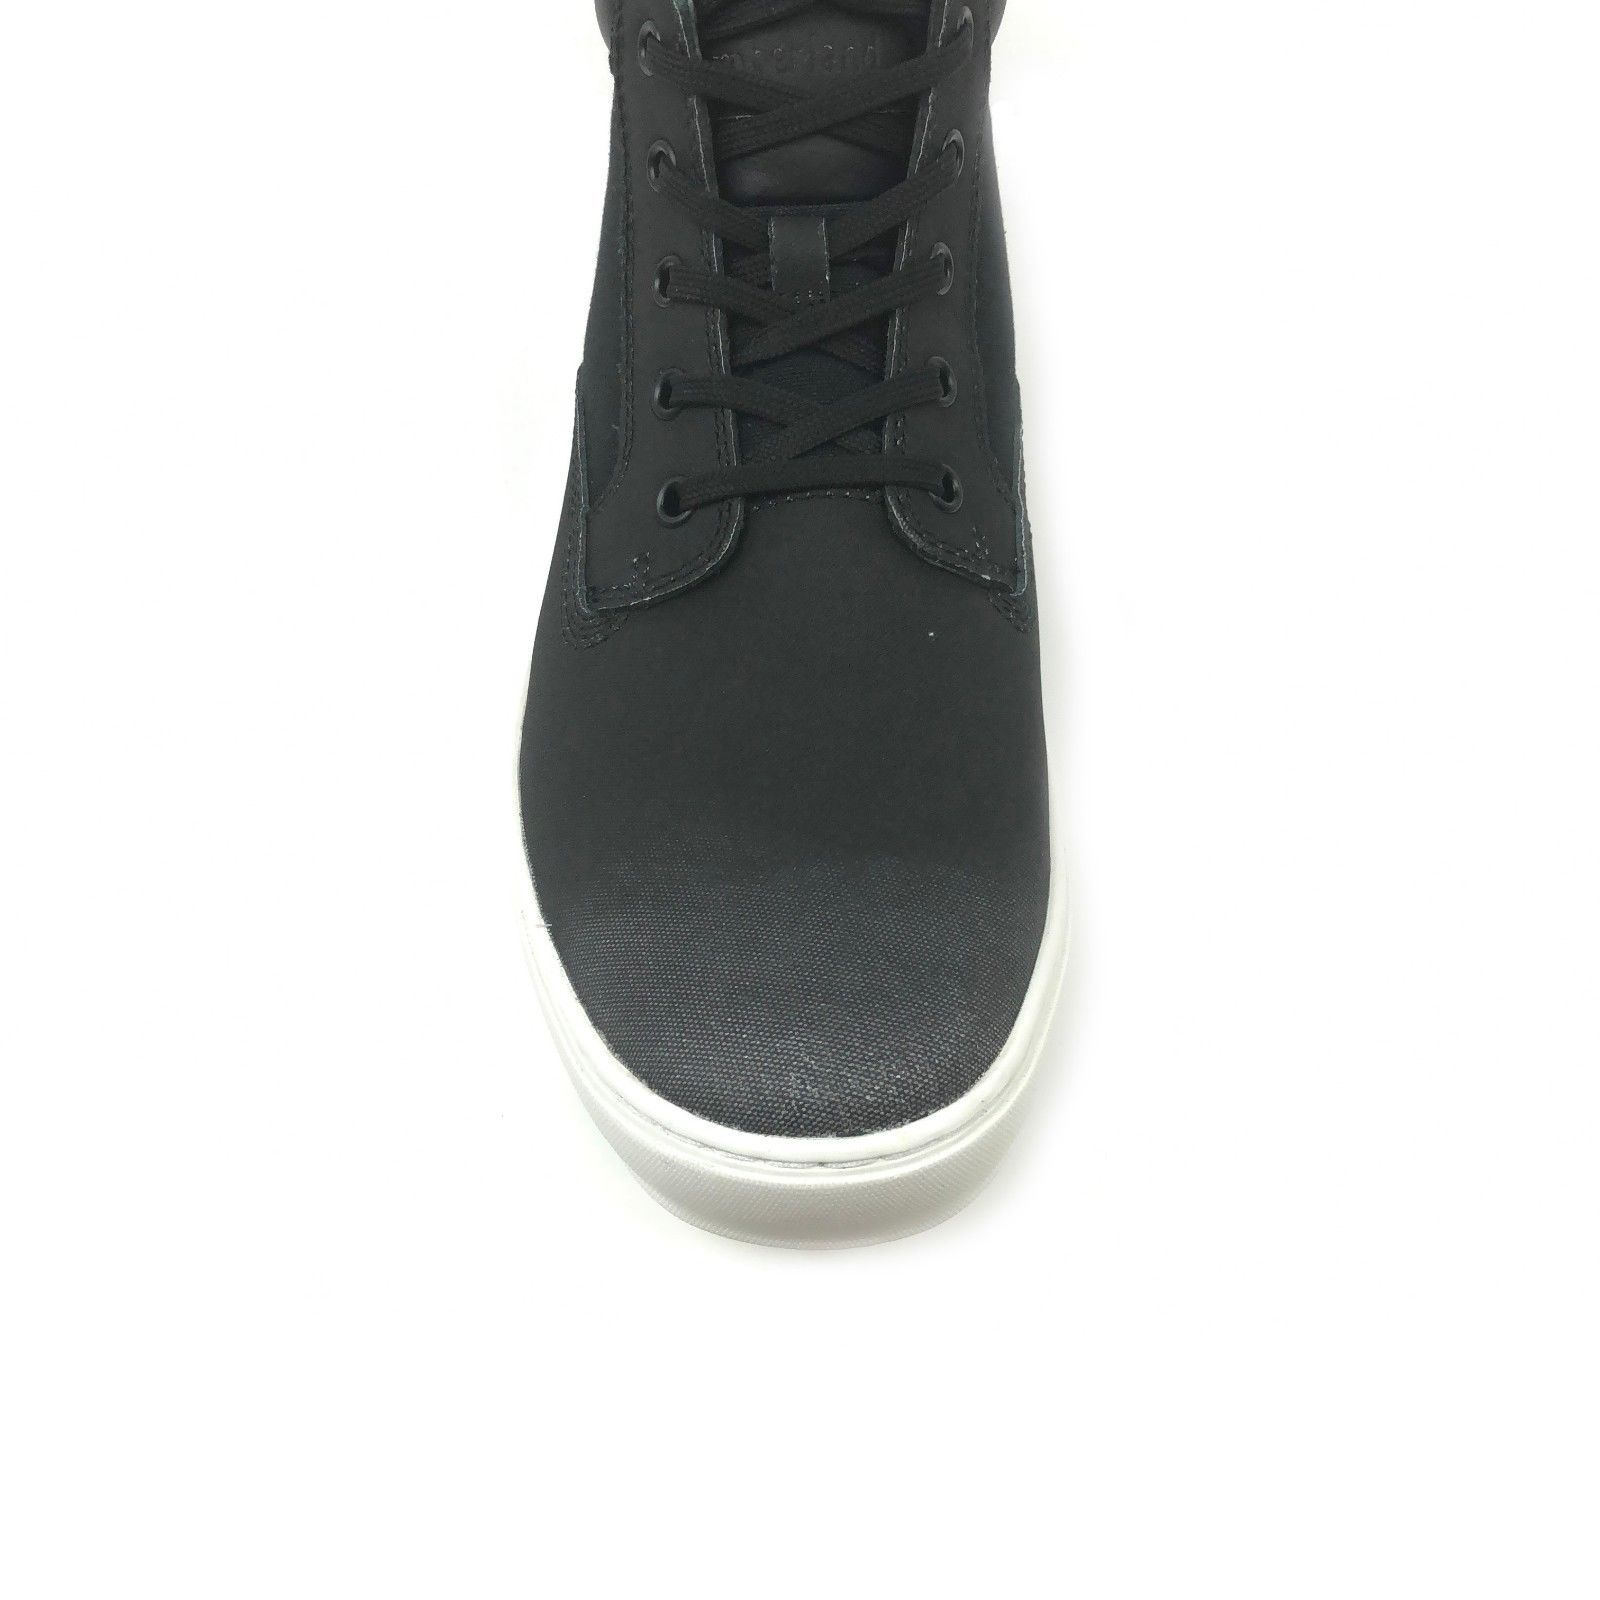 Timberland Men's Dauset Cup Fabric & Leather Chukka Black Shoes A1P1Y